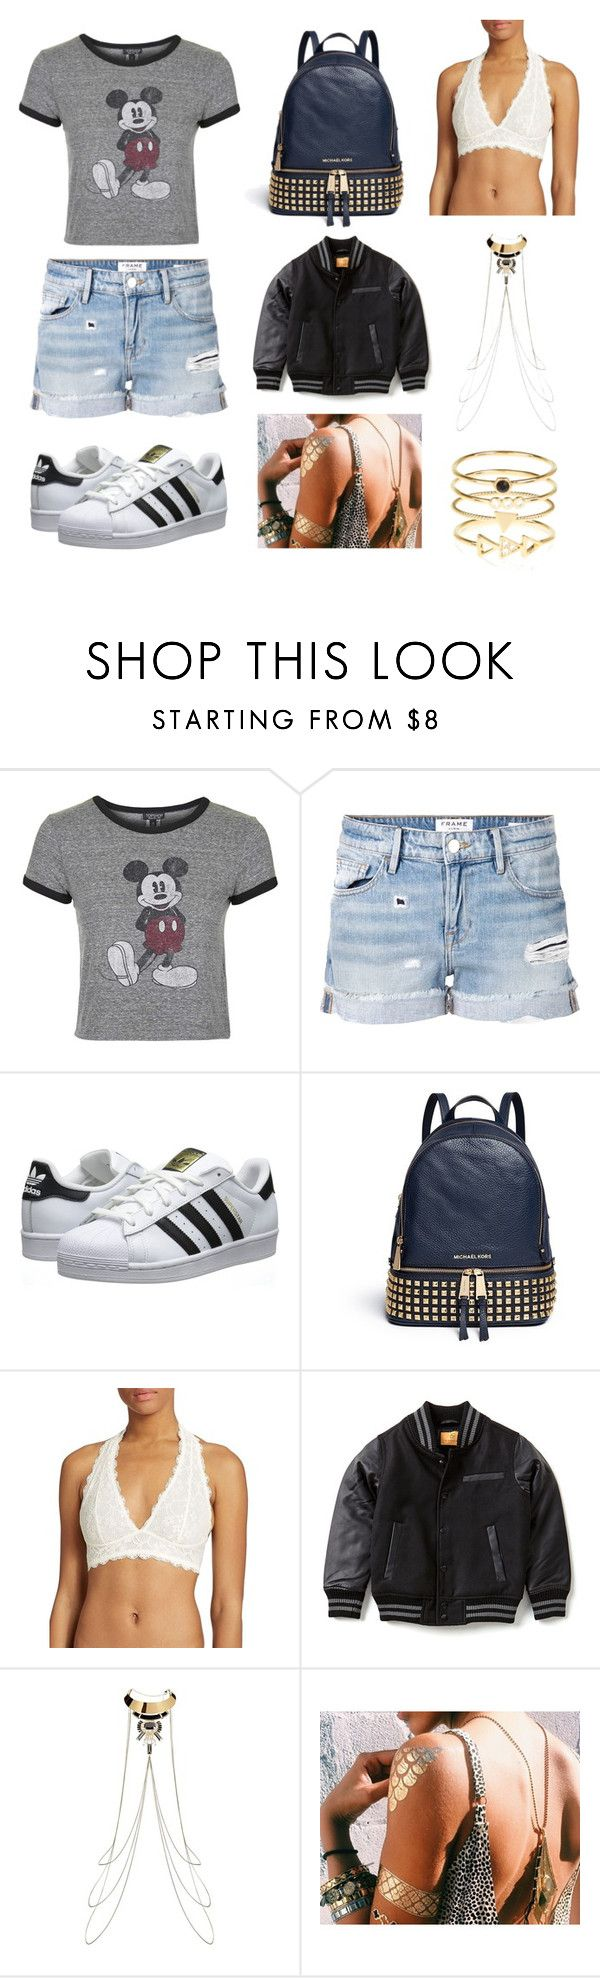 """""""Outside Lands 2016 Inspiration"""" by sinead-thomas-1 on Polyvore featuring Topshop, Frame Denim, adidas Originals, Michael Kors, Free People and Accessorize"""